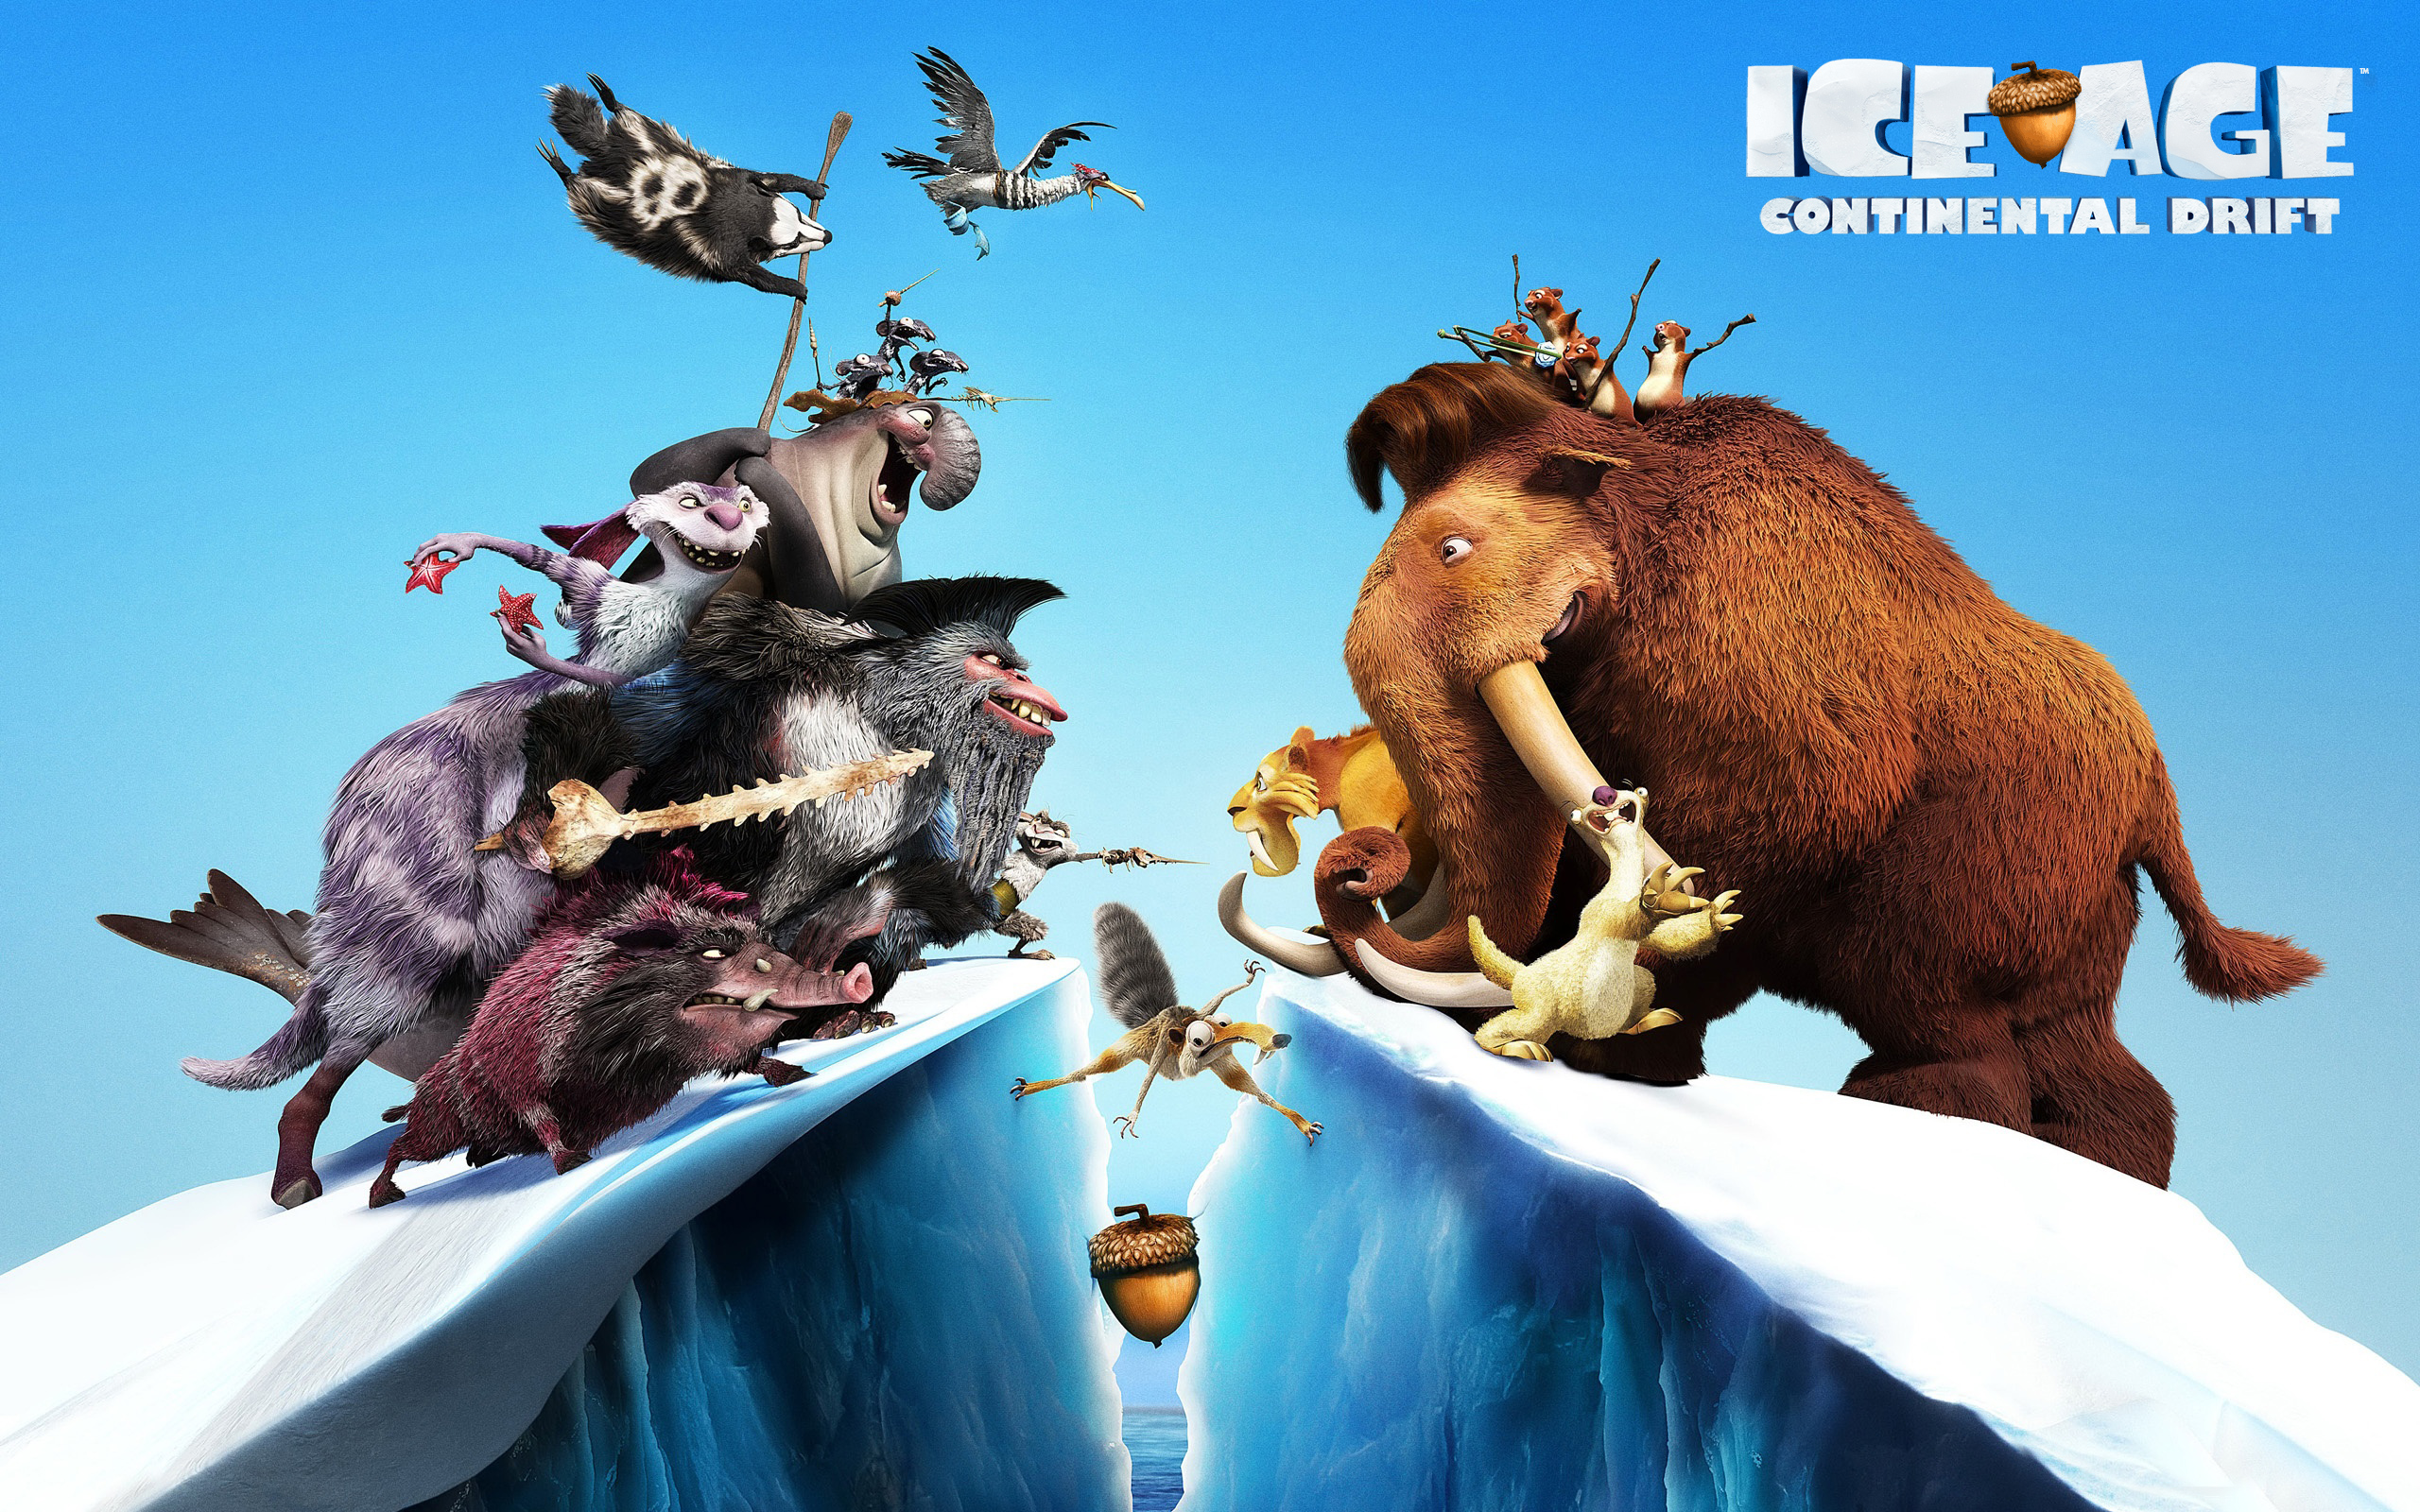 https://i0.wp.com/www.richardcrouse.ca/wp-content/uploads/2013/09/ice_age_4_continental_drift-wide1.jpg